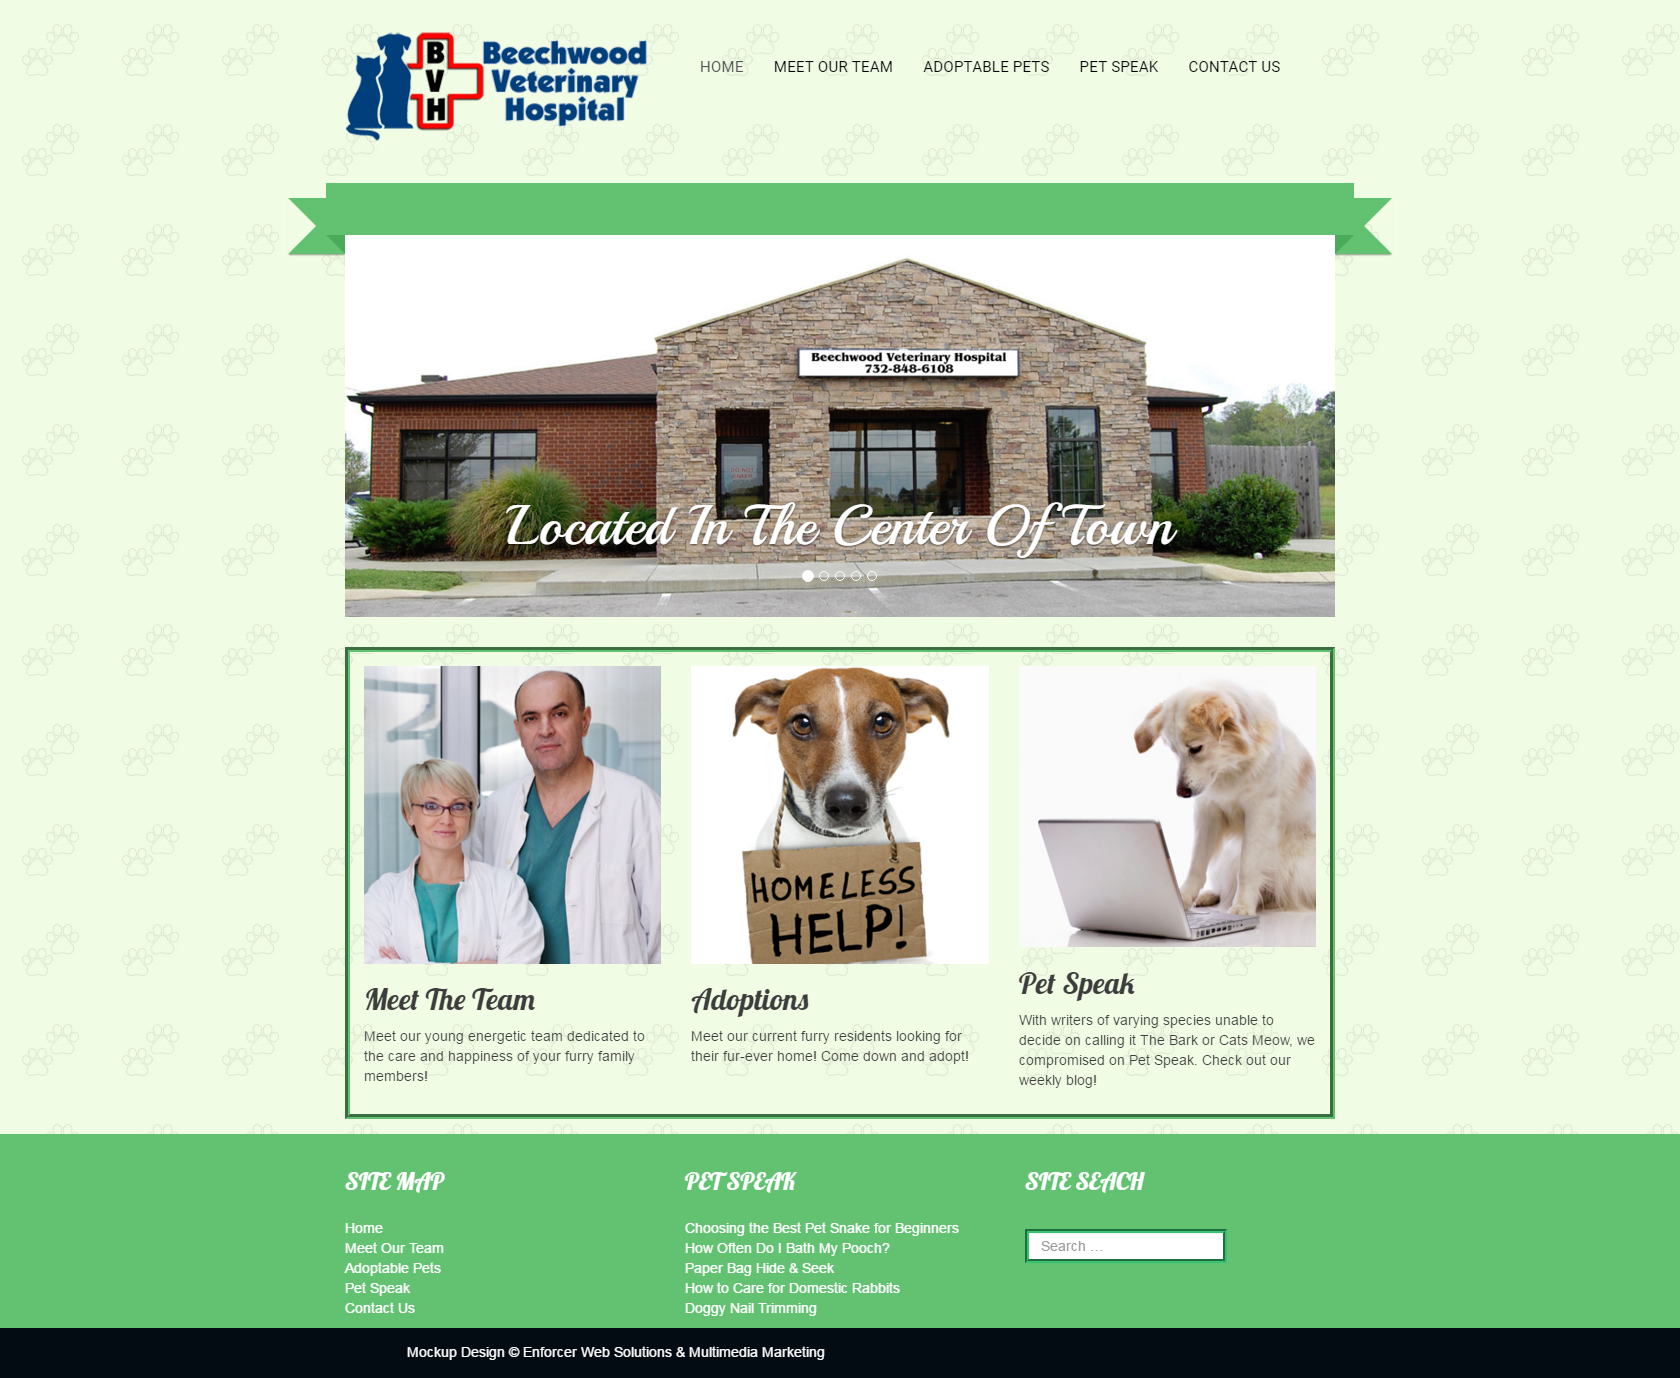 Beechwood Veterinary Home: Desktop View